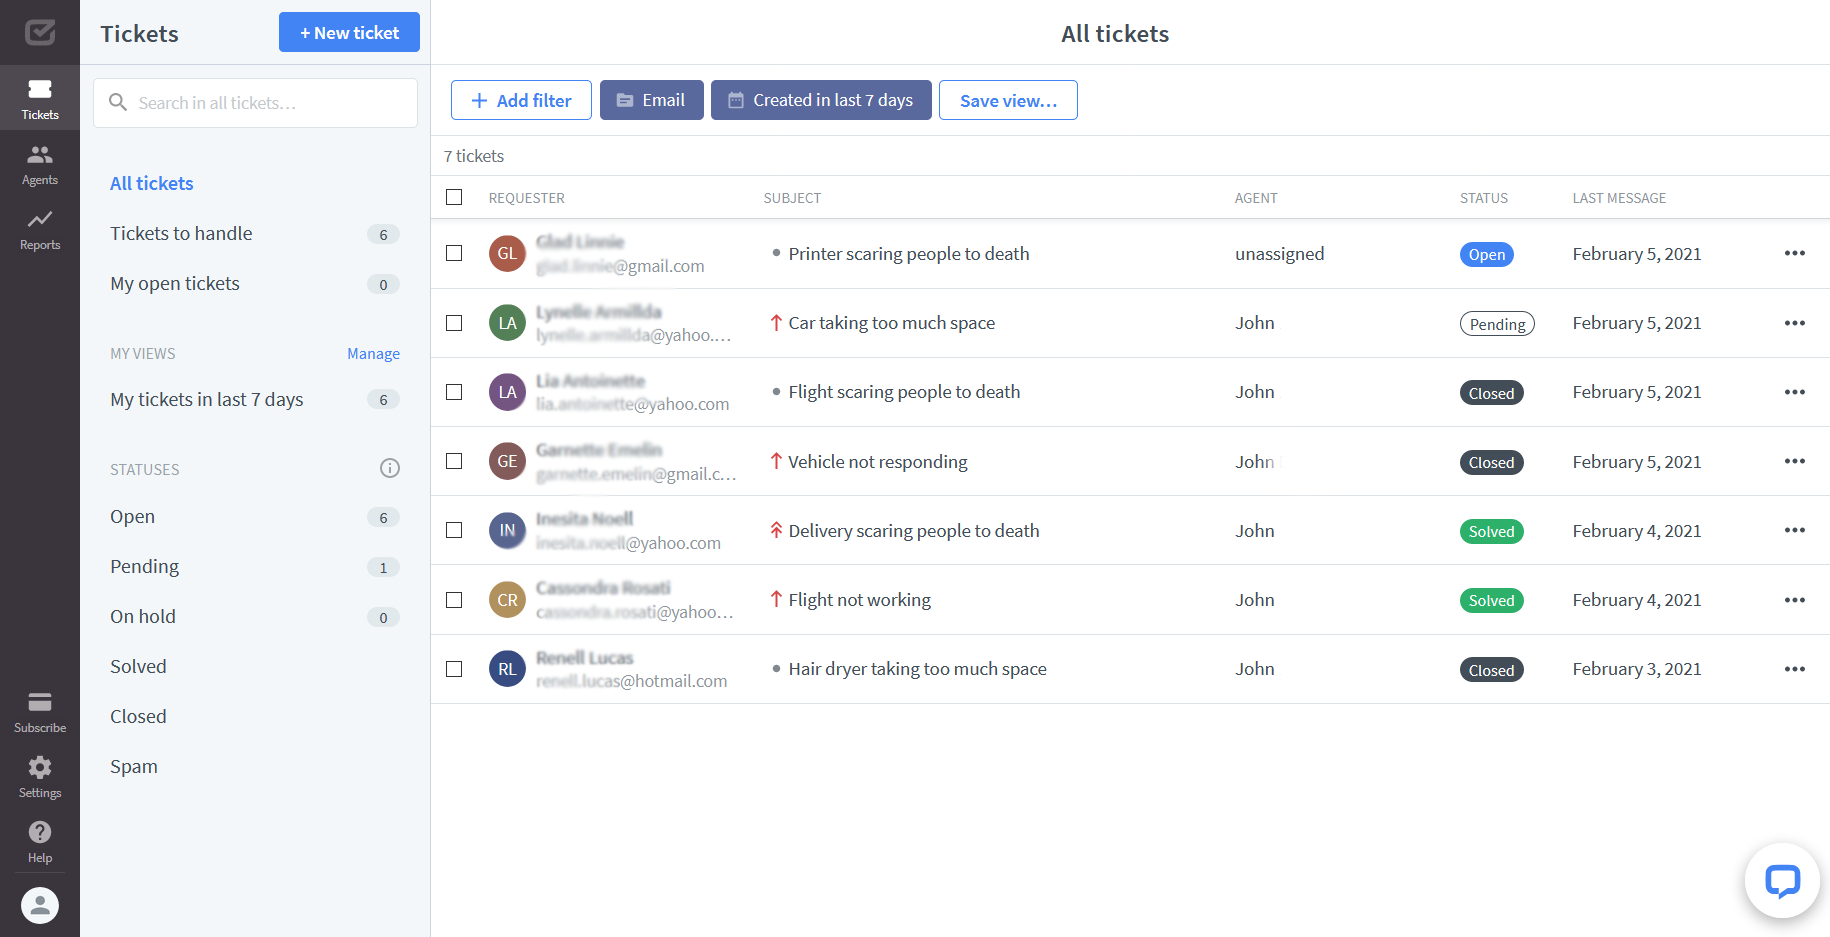 HelpDesk view of a list of tickets with variuos statuses: Open, Pending, Solved and Closed.